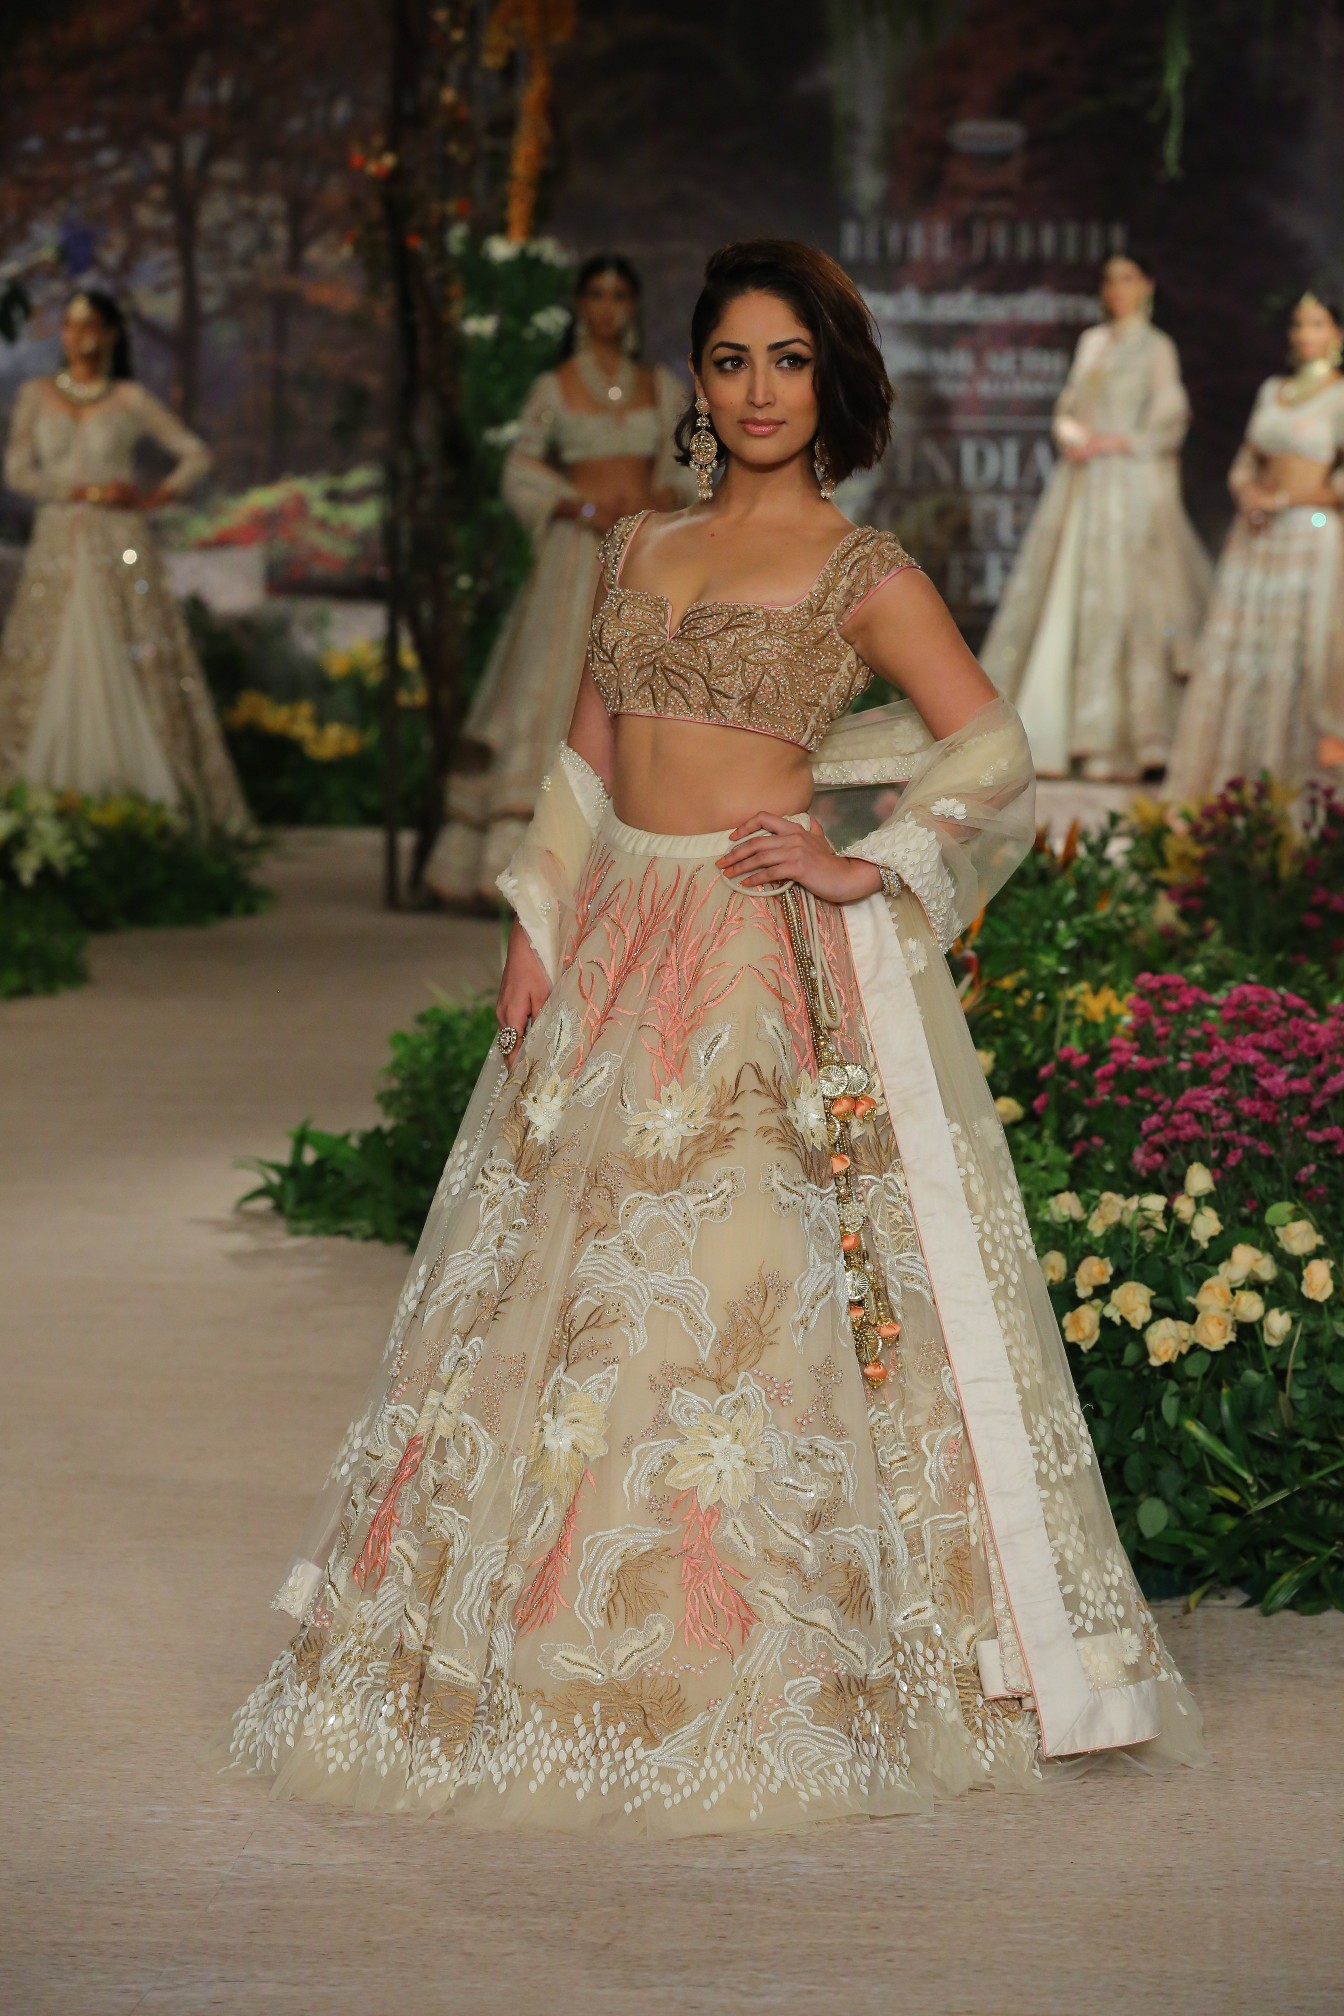 Once Upon A Dream by Designer Reynu Taandon at FDCI India Couture Week 2018 worn by Yami Gautam